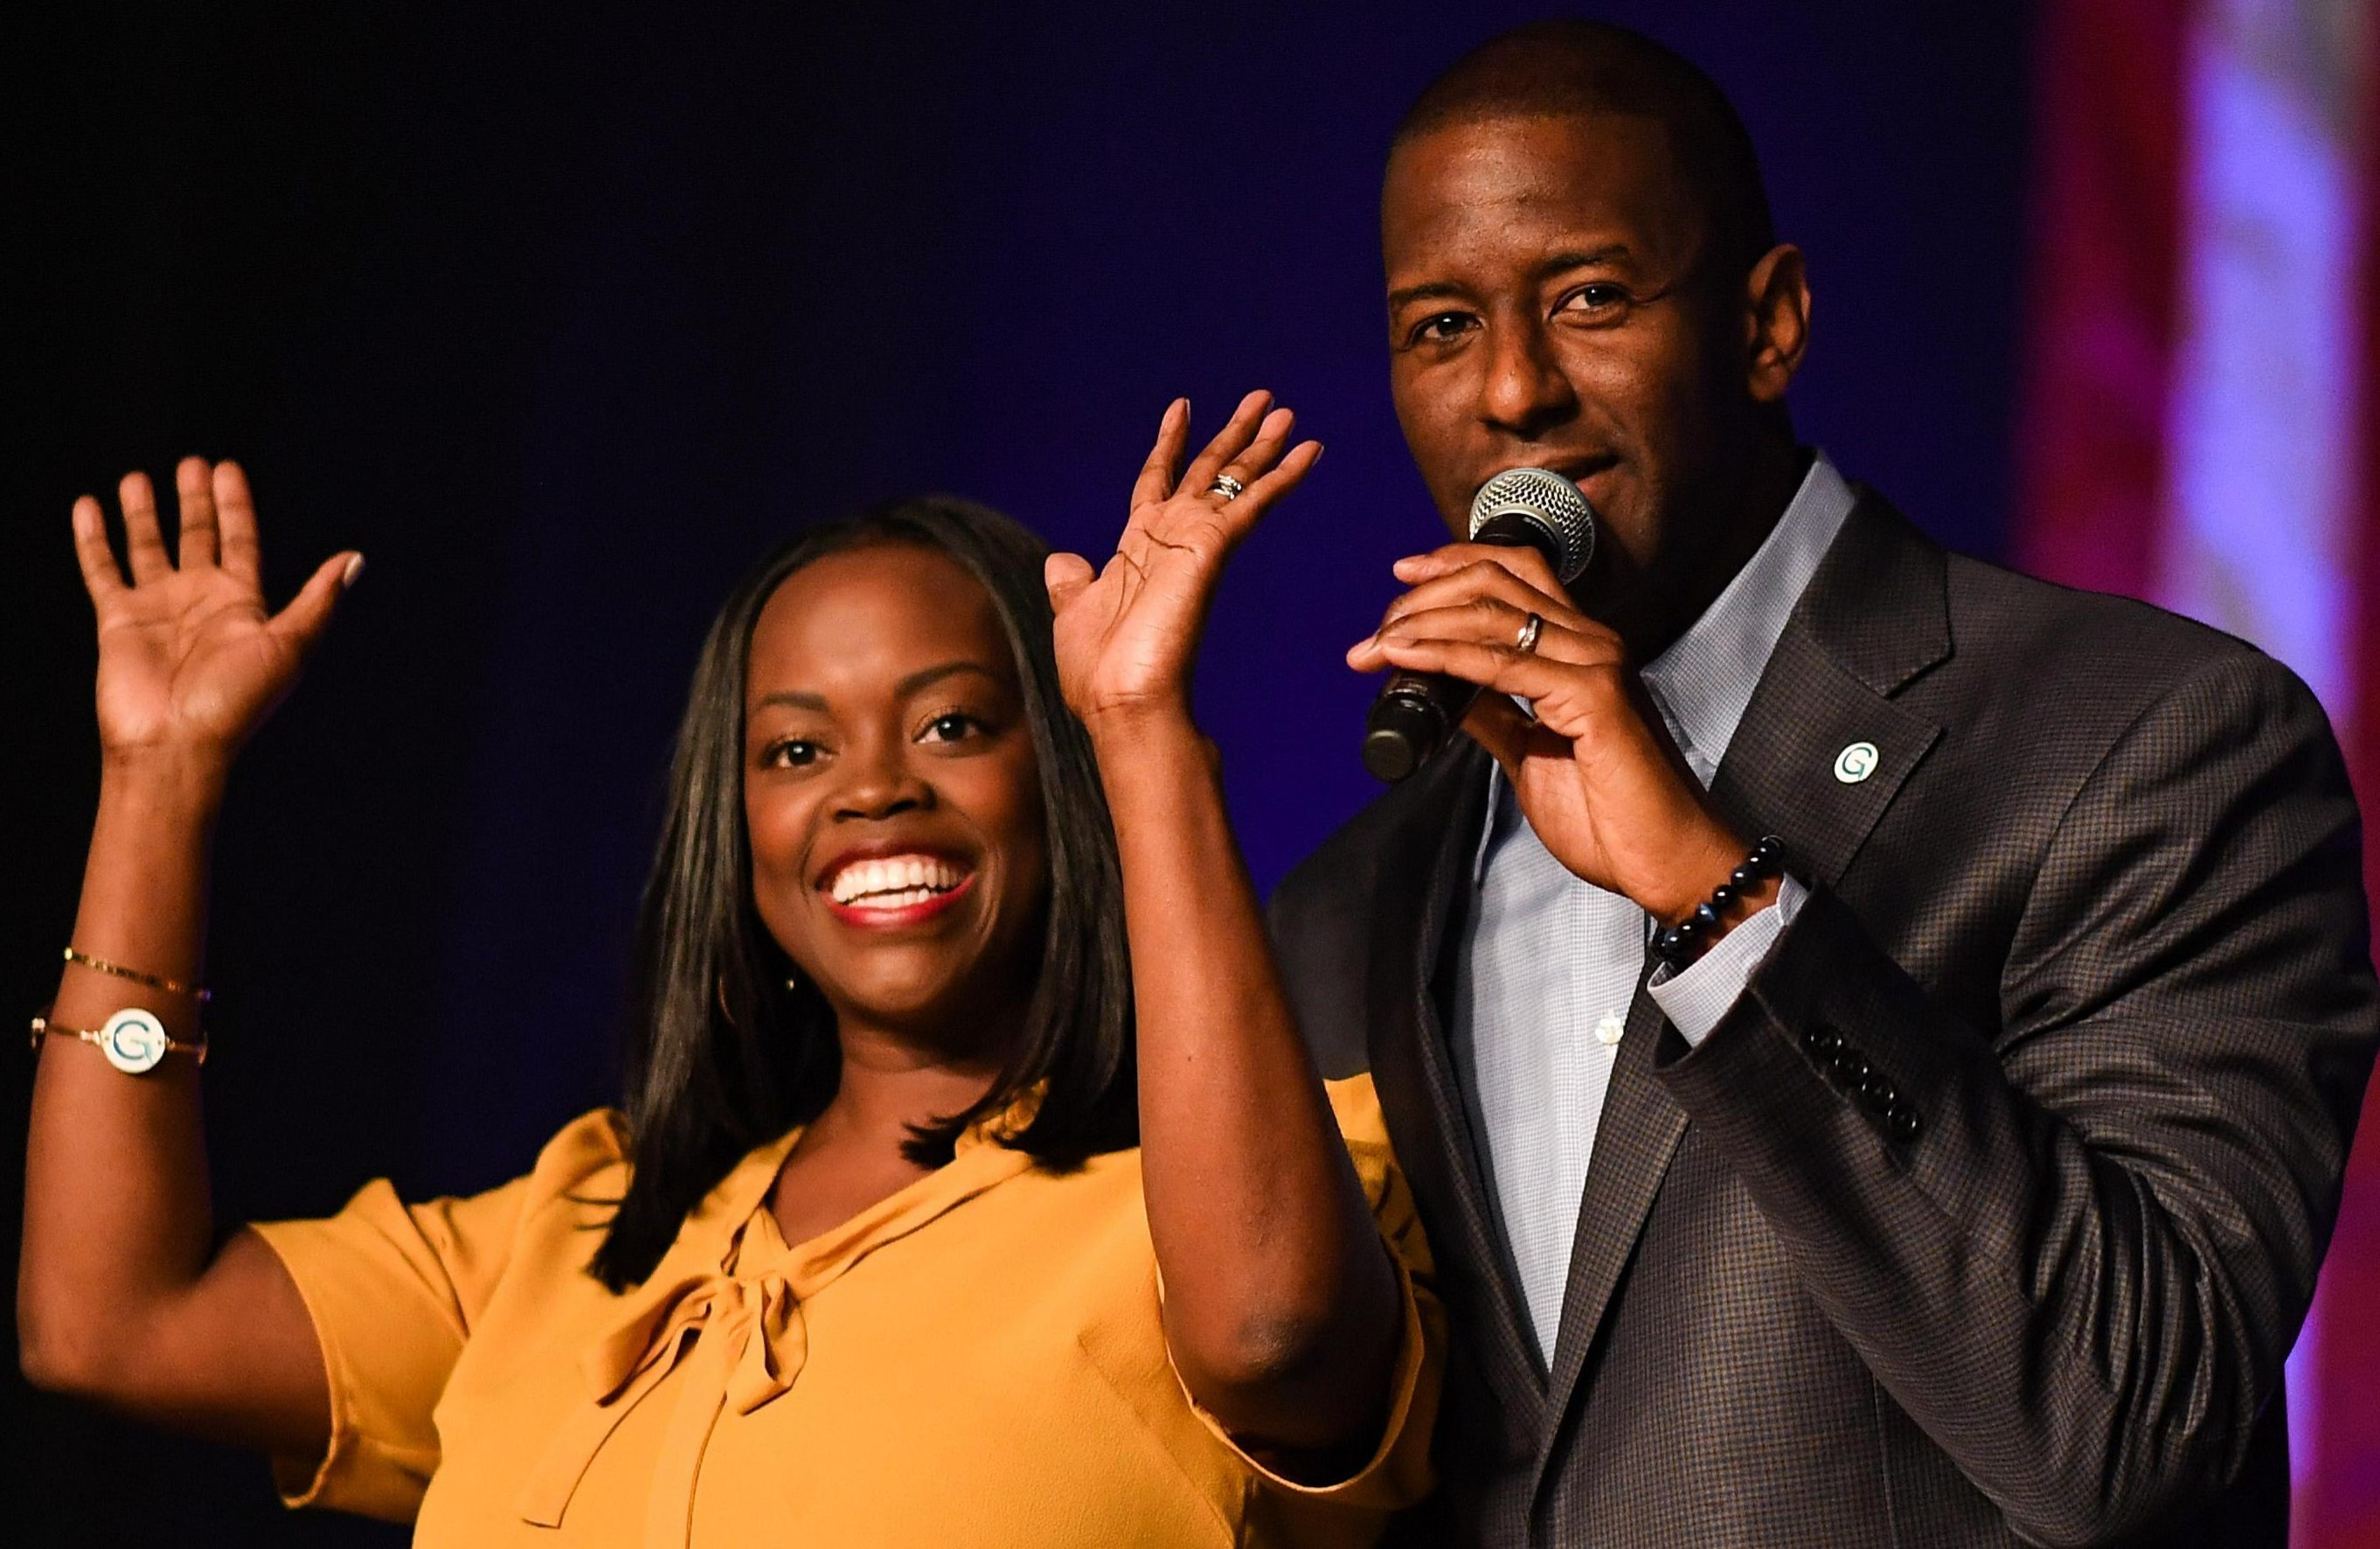 Andrew Gillum says he is bisexual